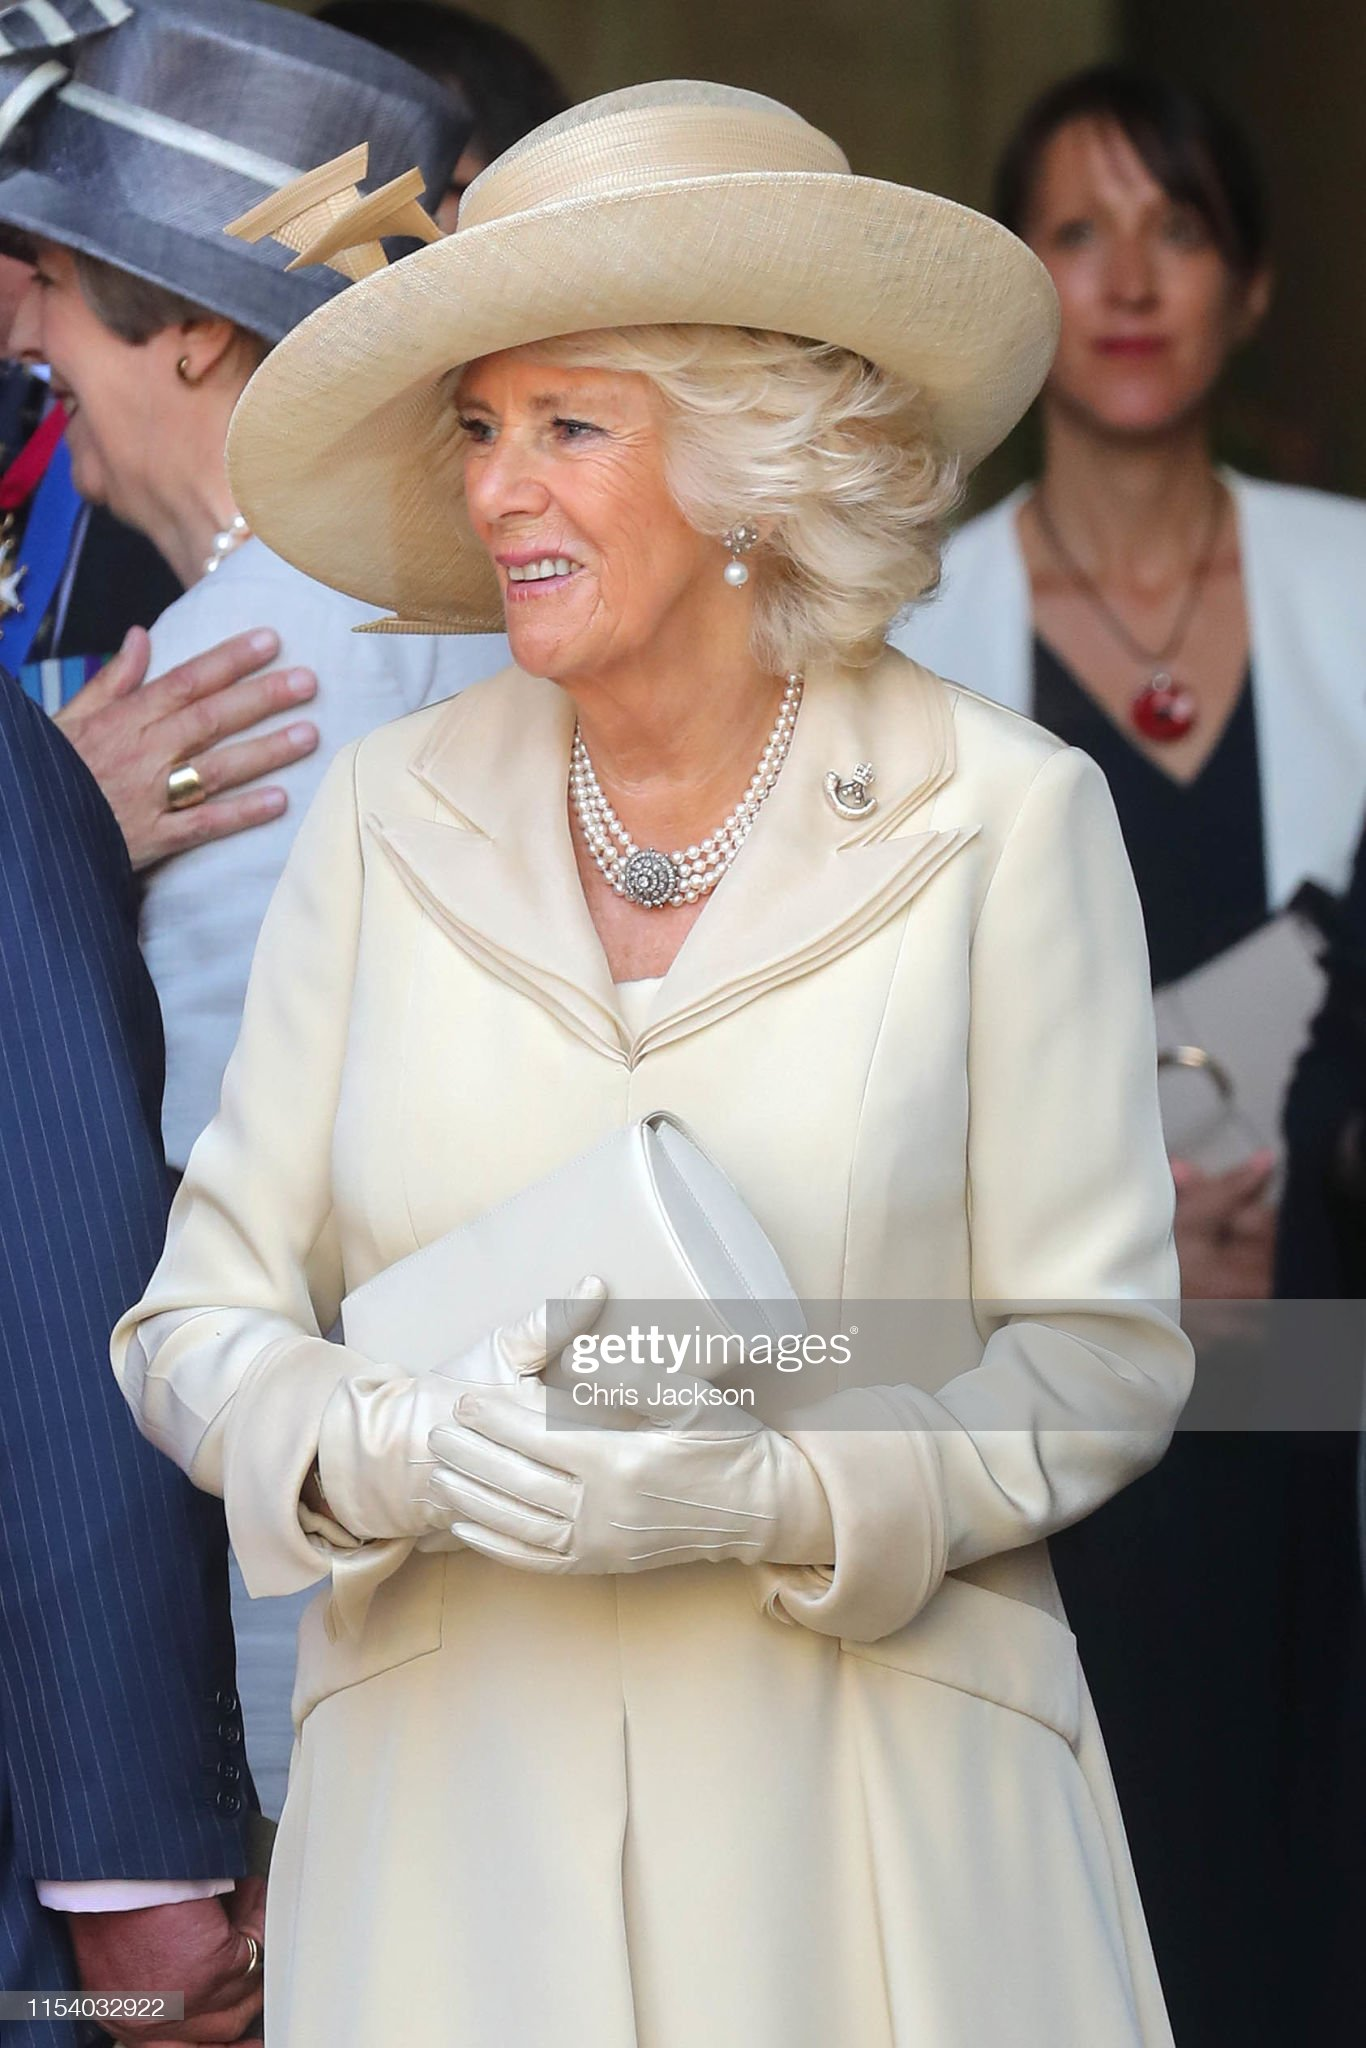 camilla-duchess-of-cornwall-departs-bayeux-cathedral-on-june-06-2019-picture-id1154032922